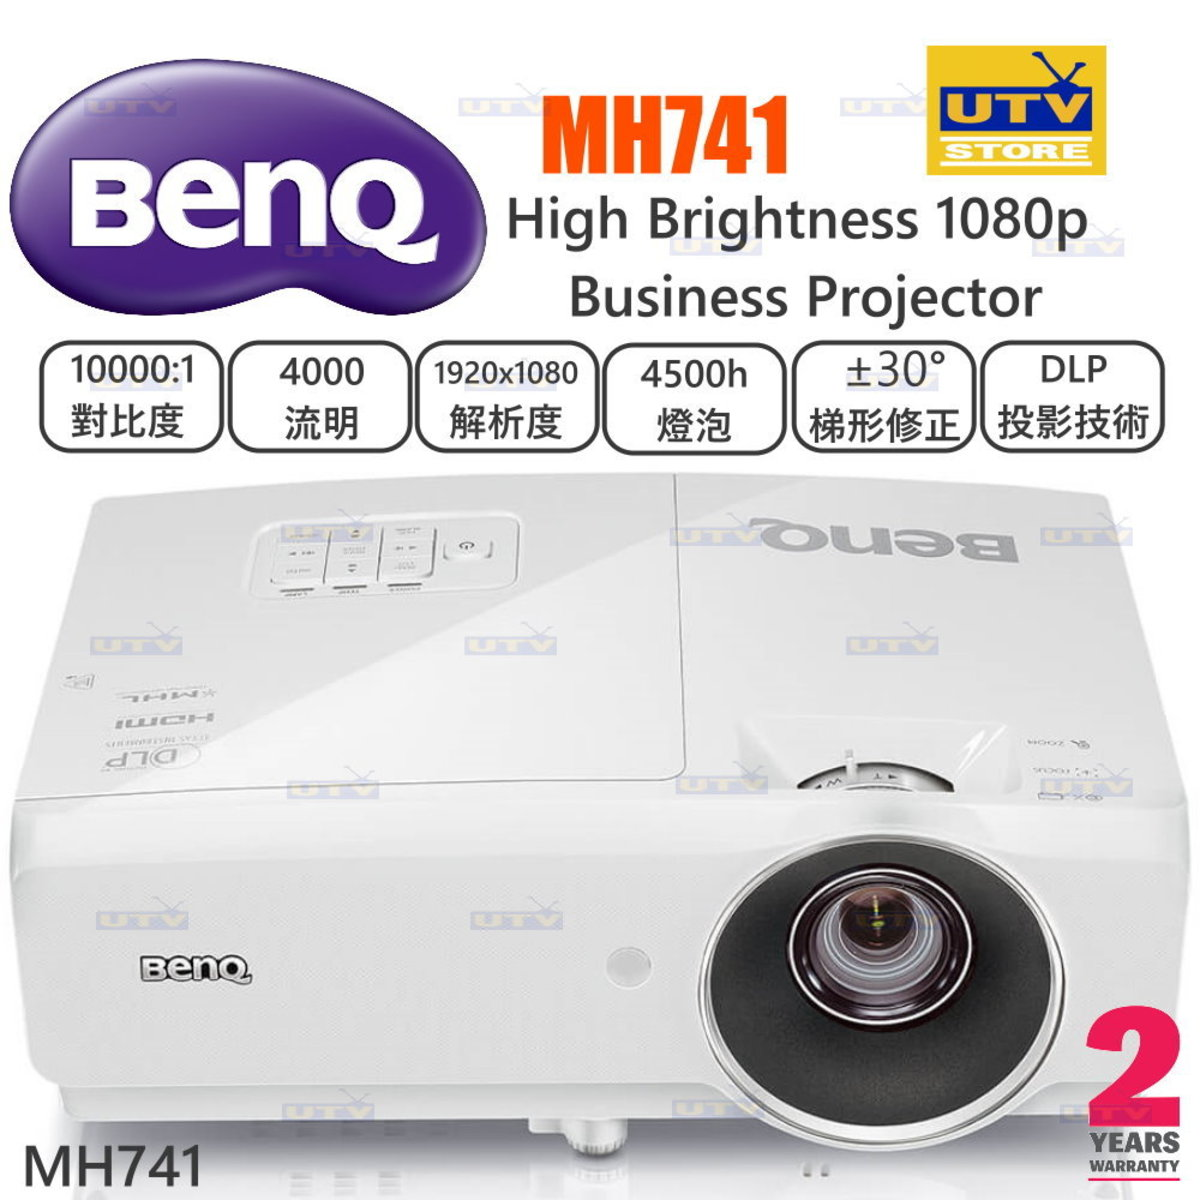 MH741 High Brightness 1080p Business Projector